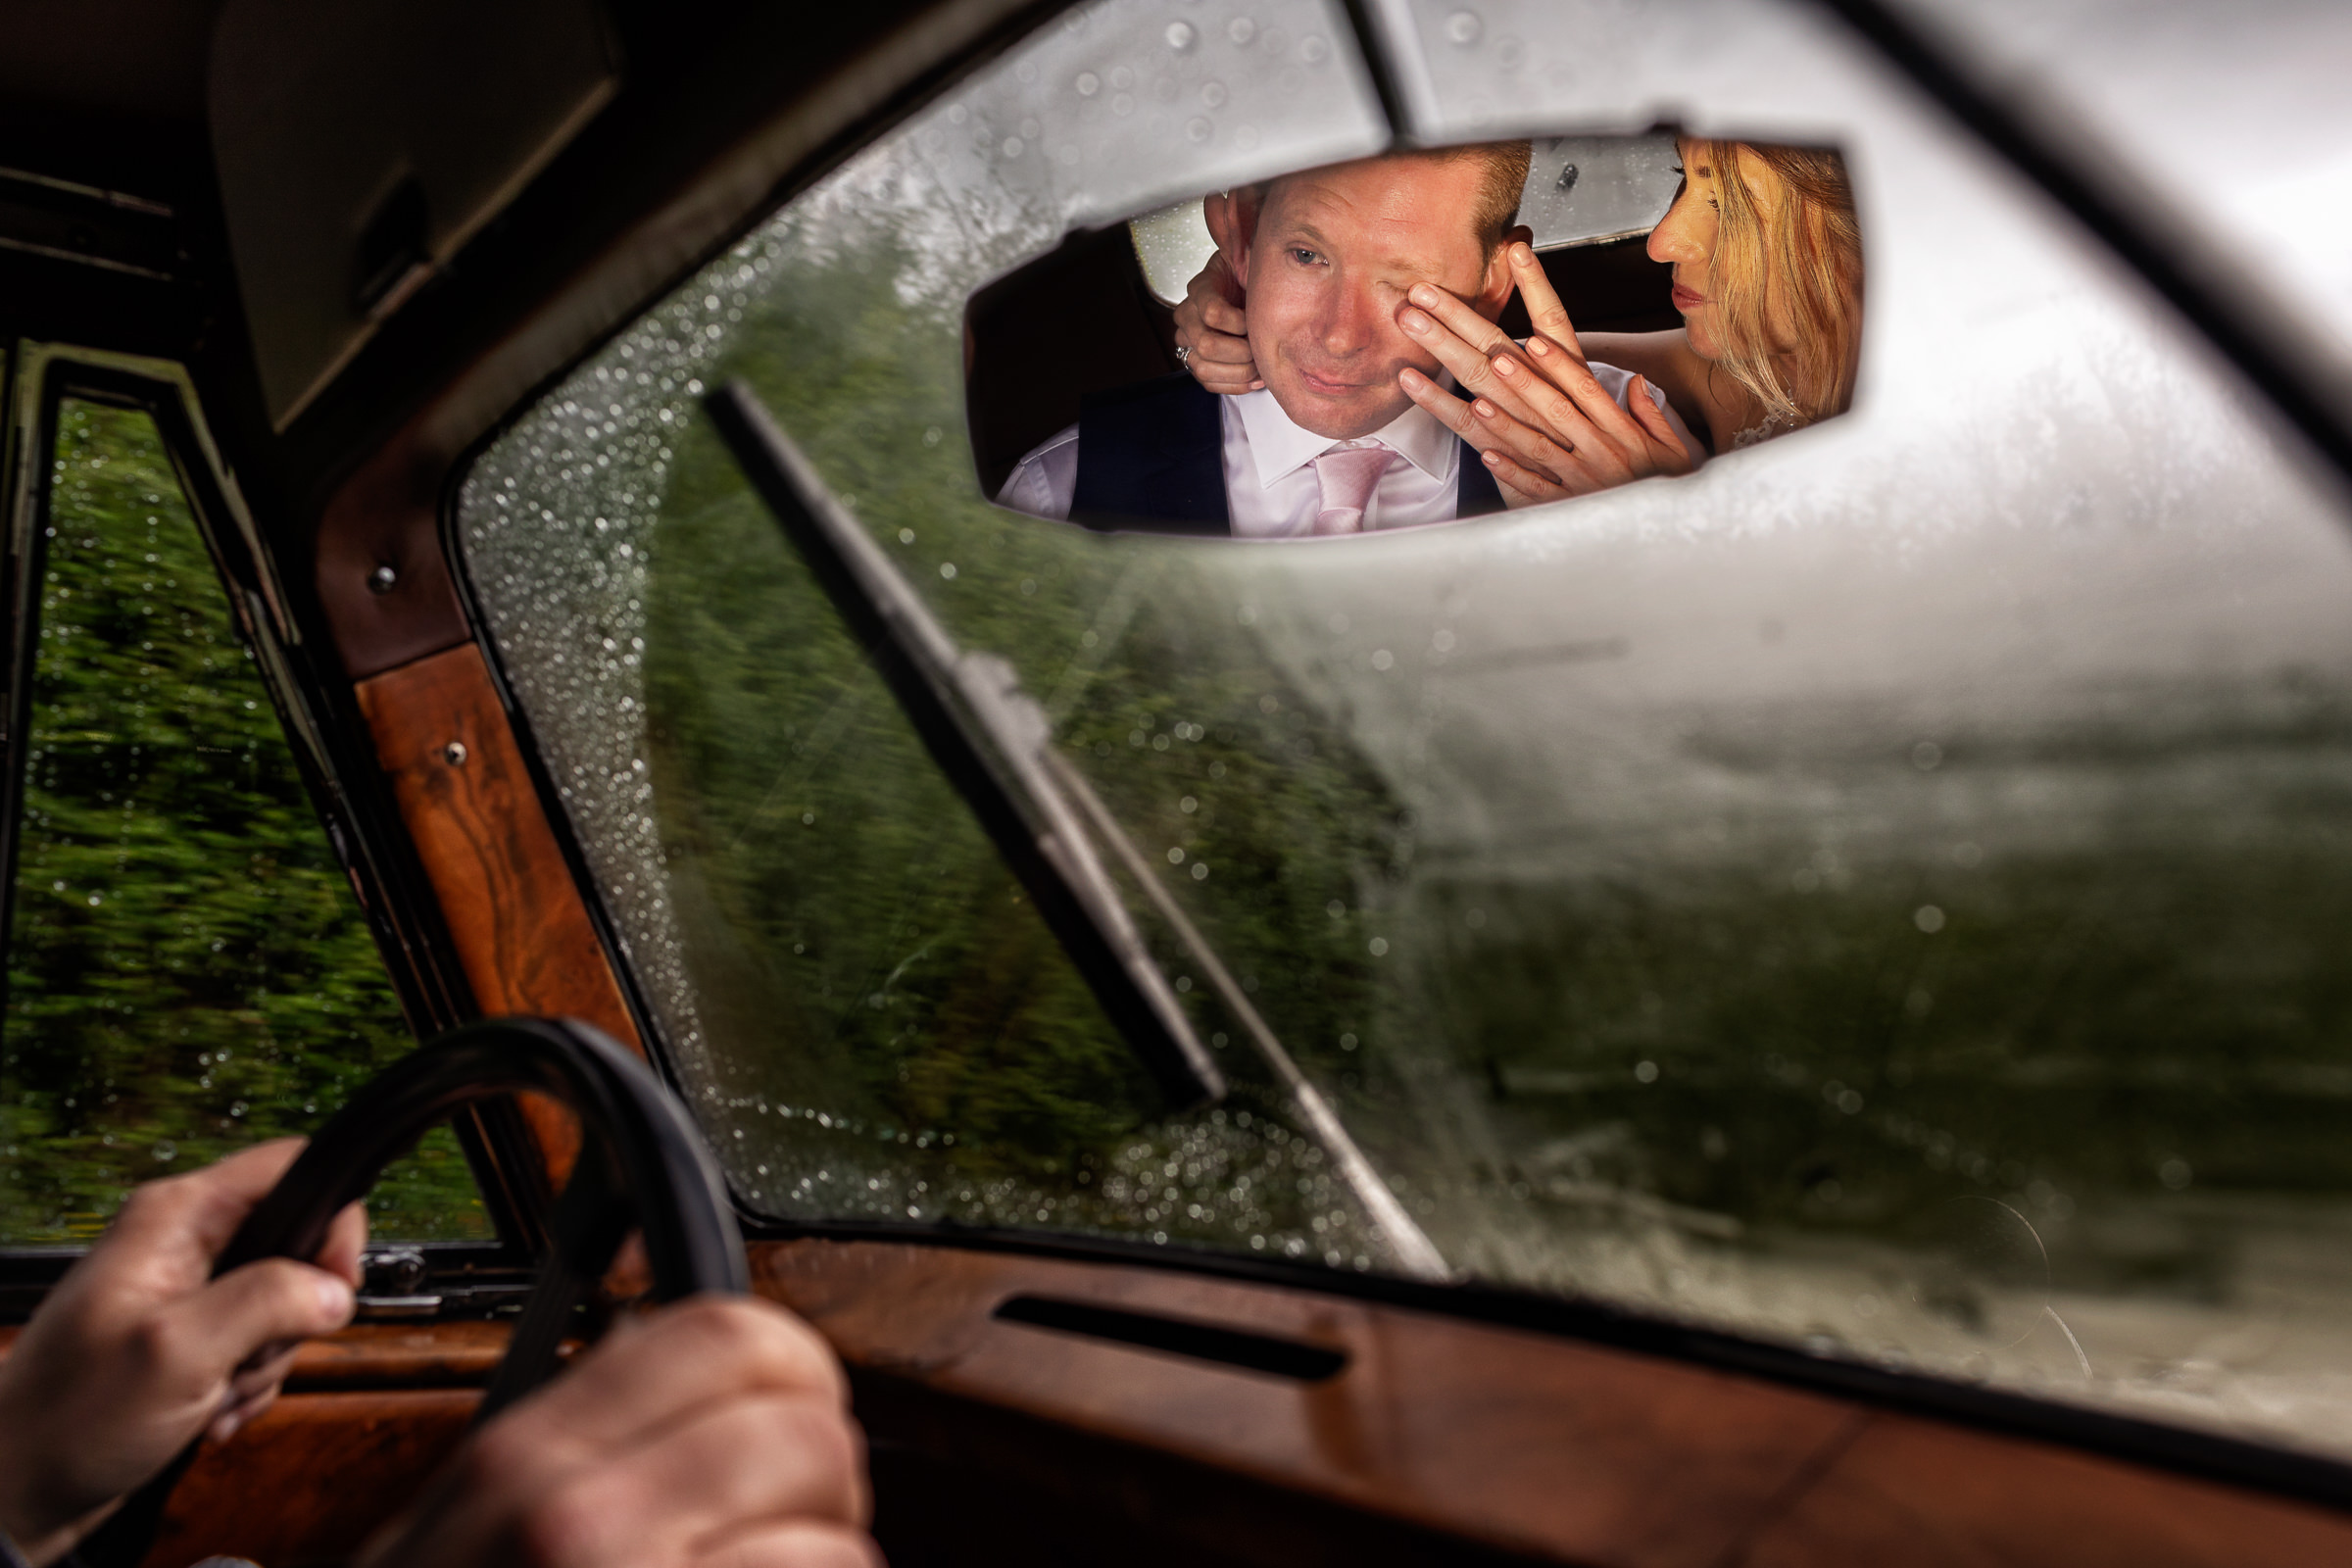 Rear view mirror reflection of bride wiping grooms tears - photo by D2 Photography